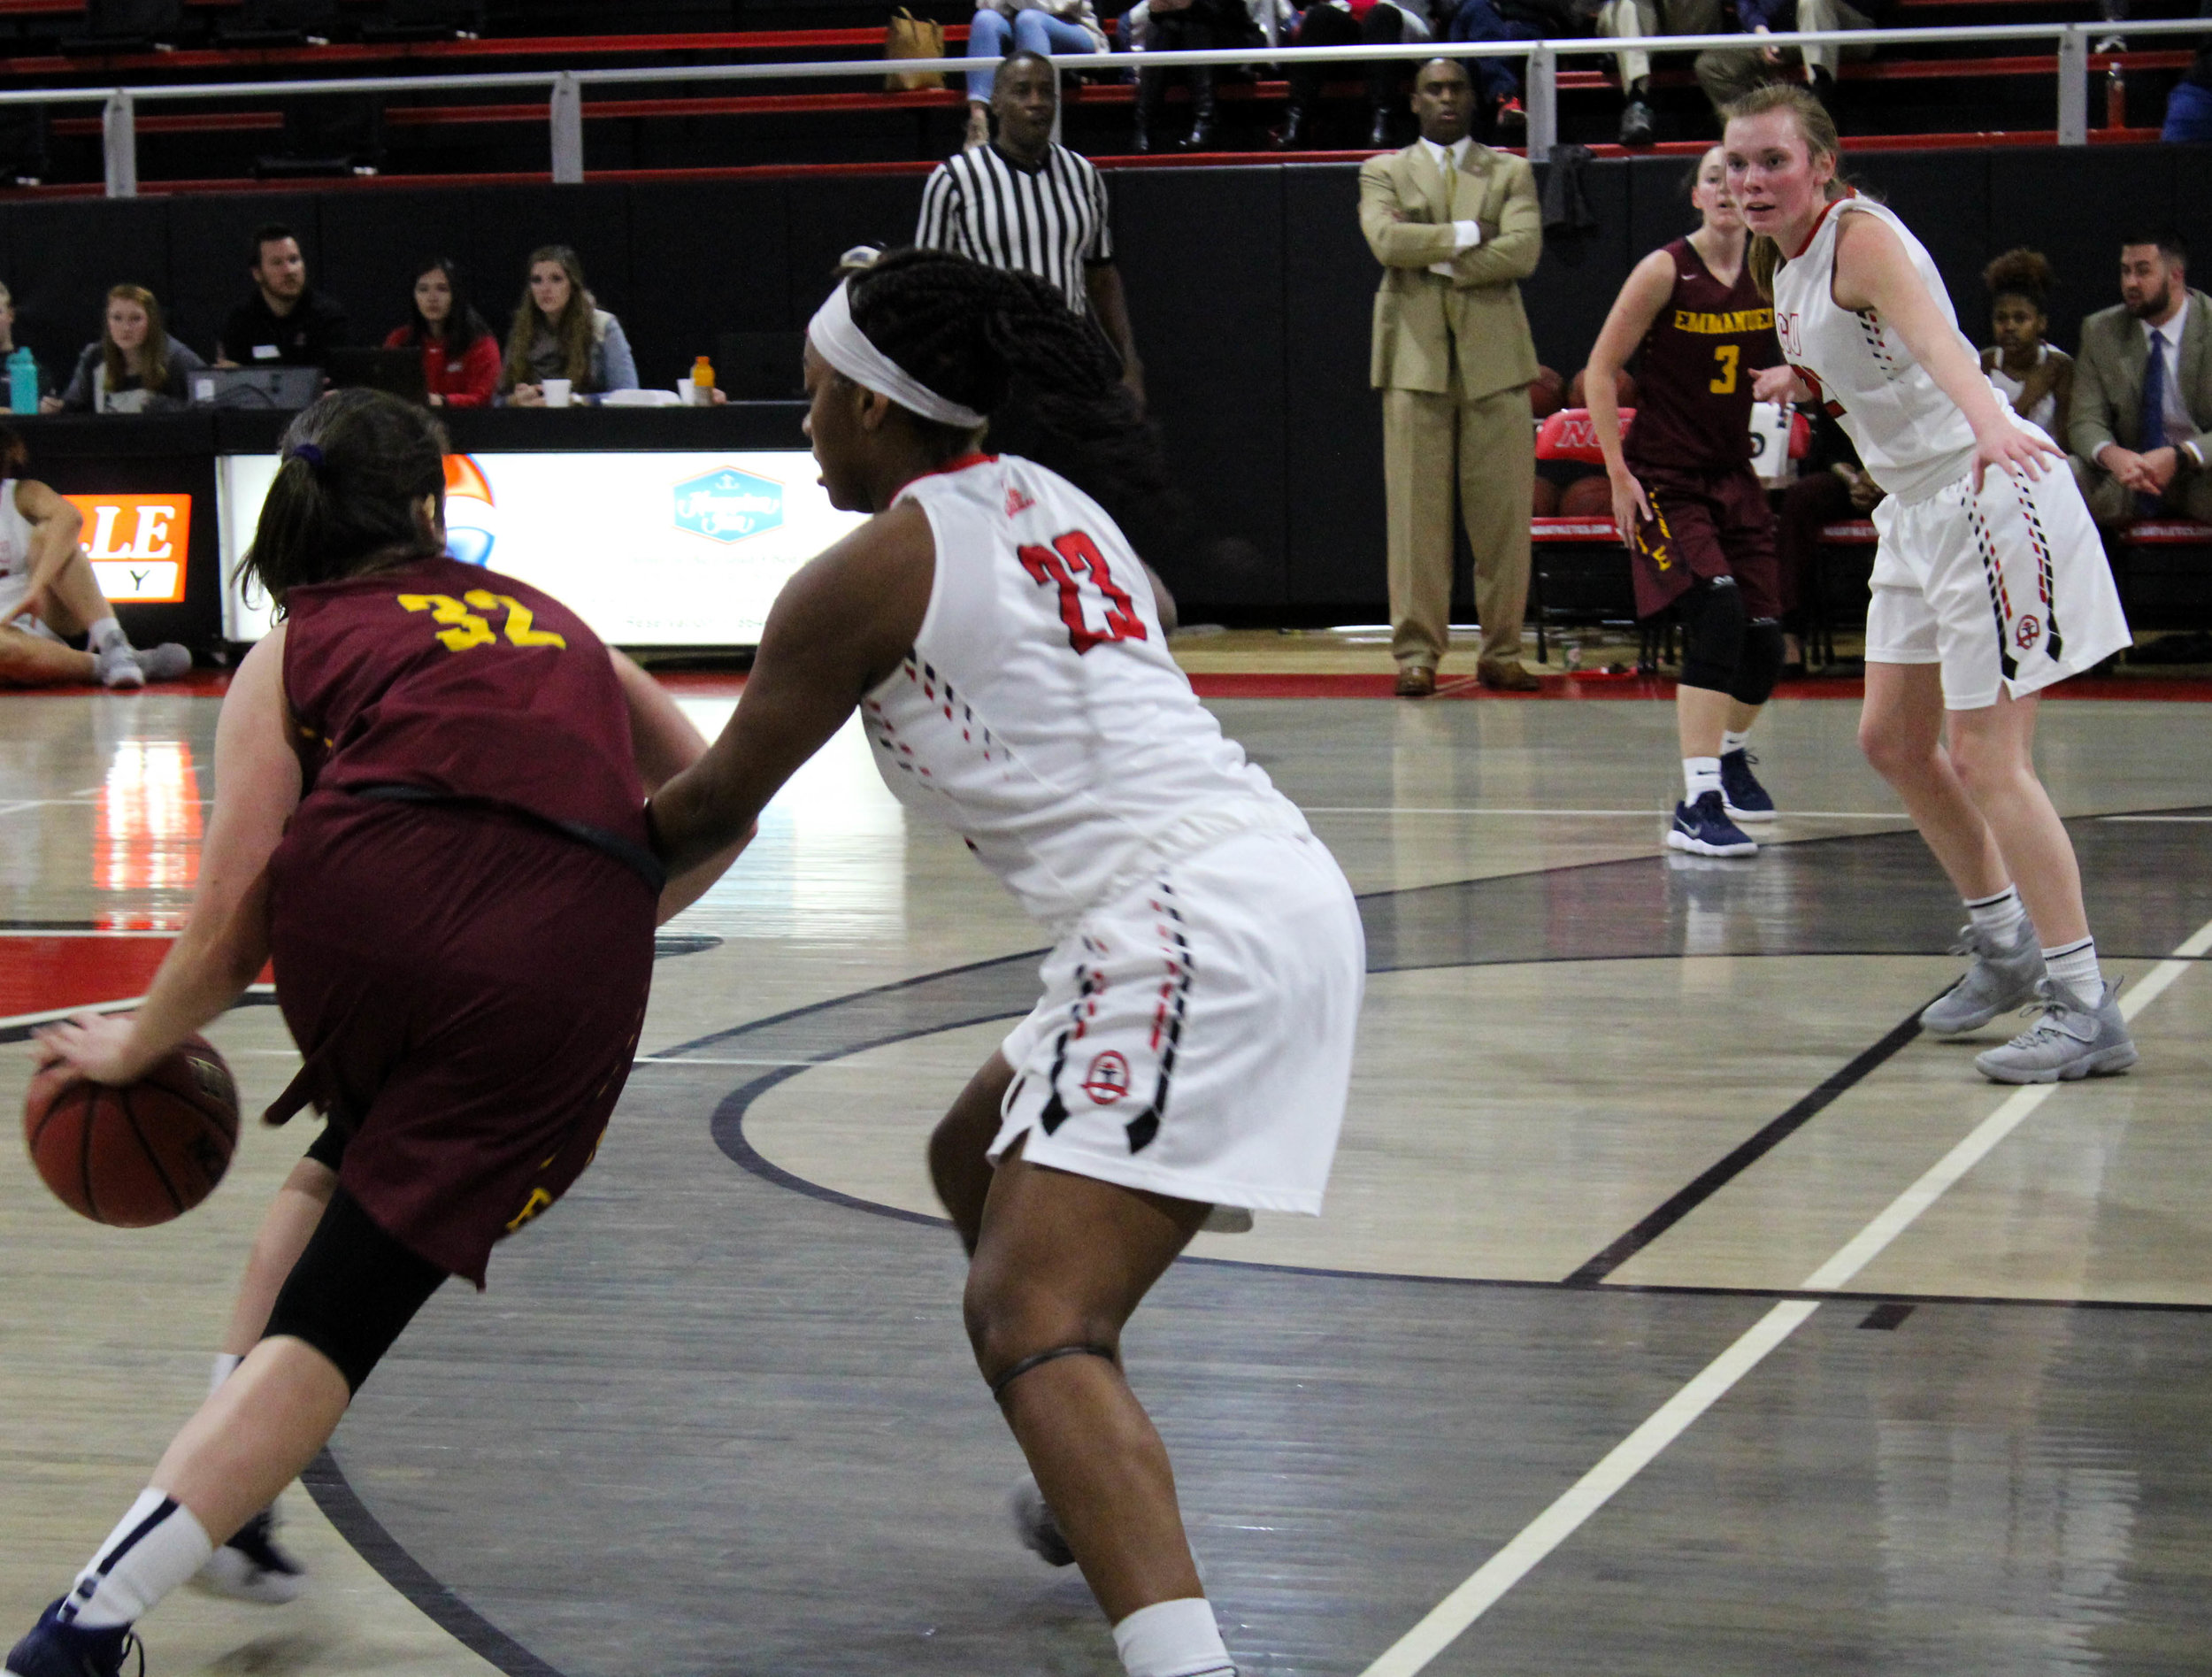 Tyana Sanders (23) guards Emmanuel's point guard as she attempts to drive towards the basket.